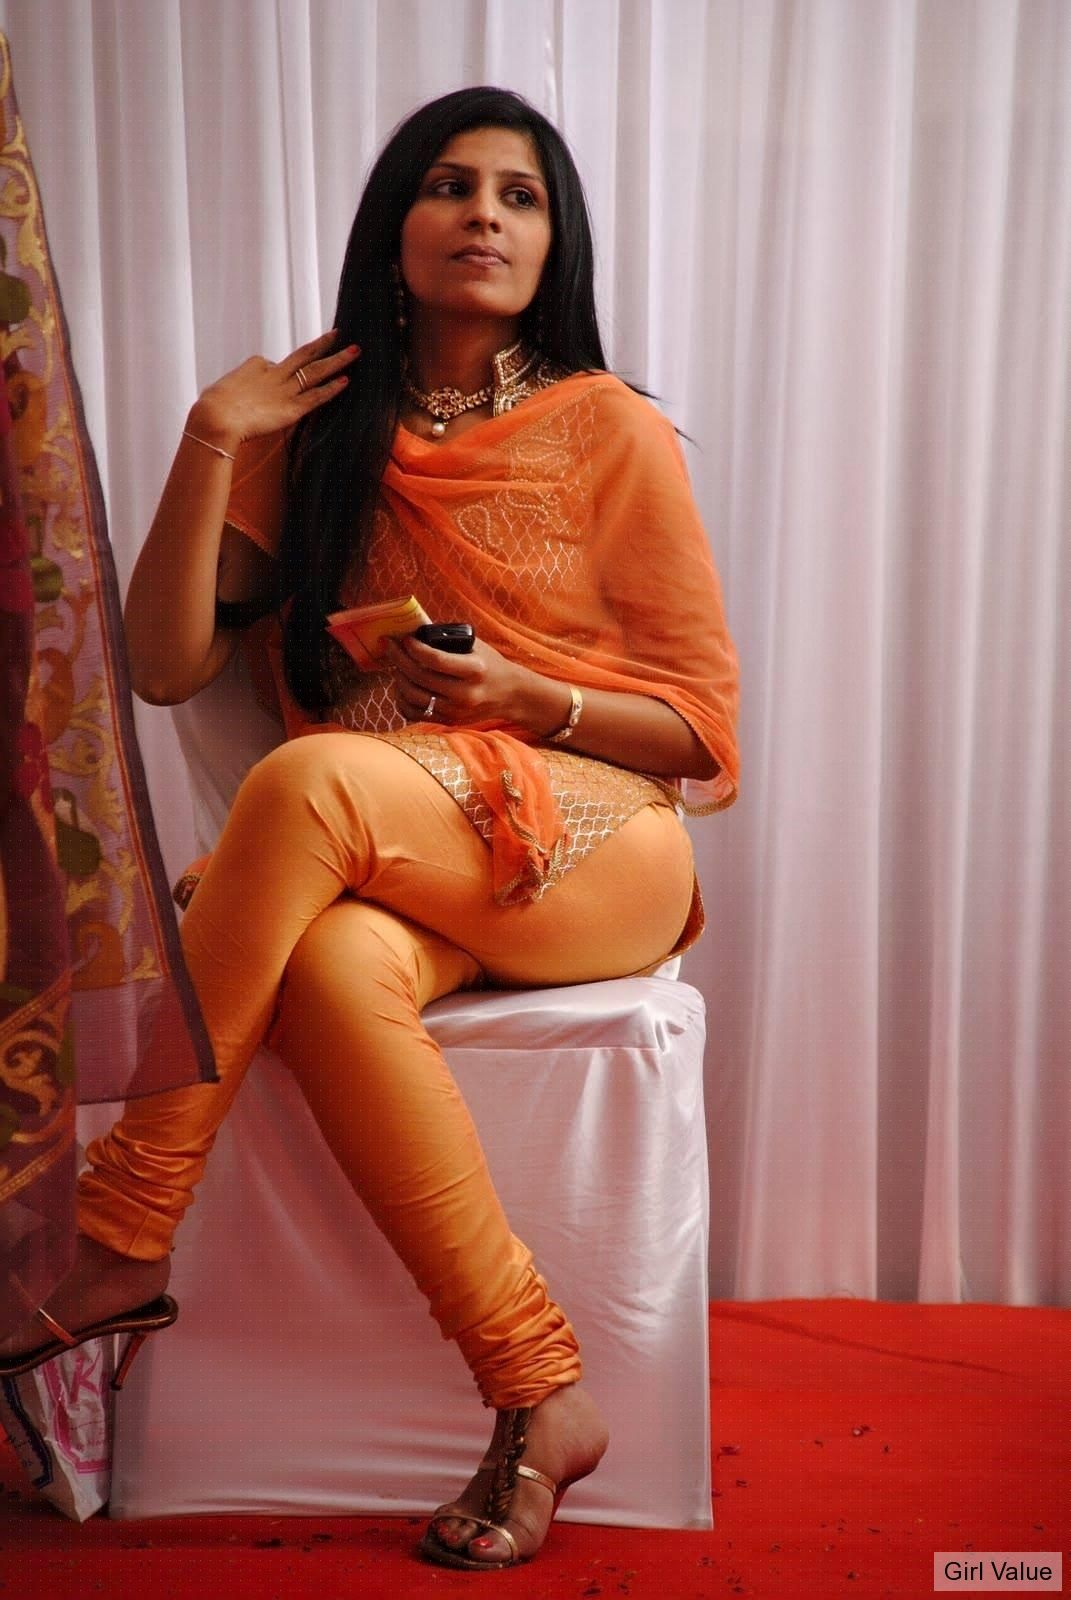 Indian girl in orange salwar kameez dress